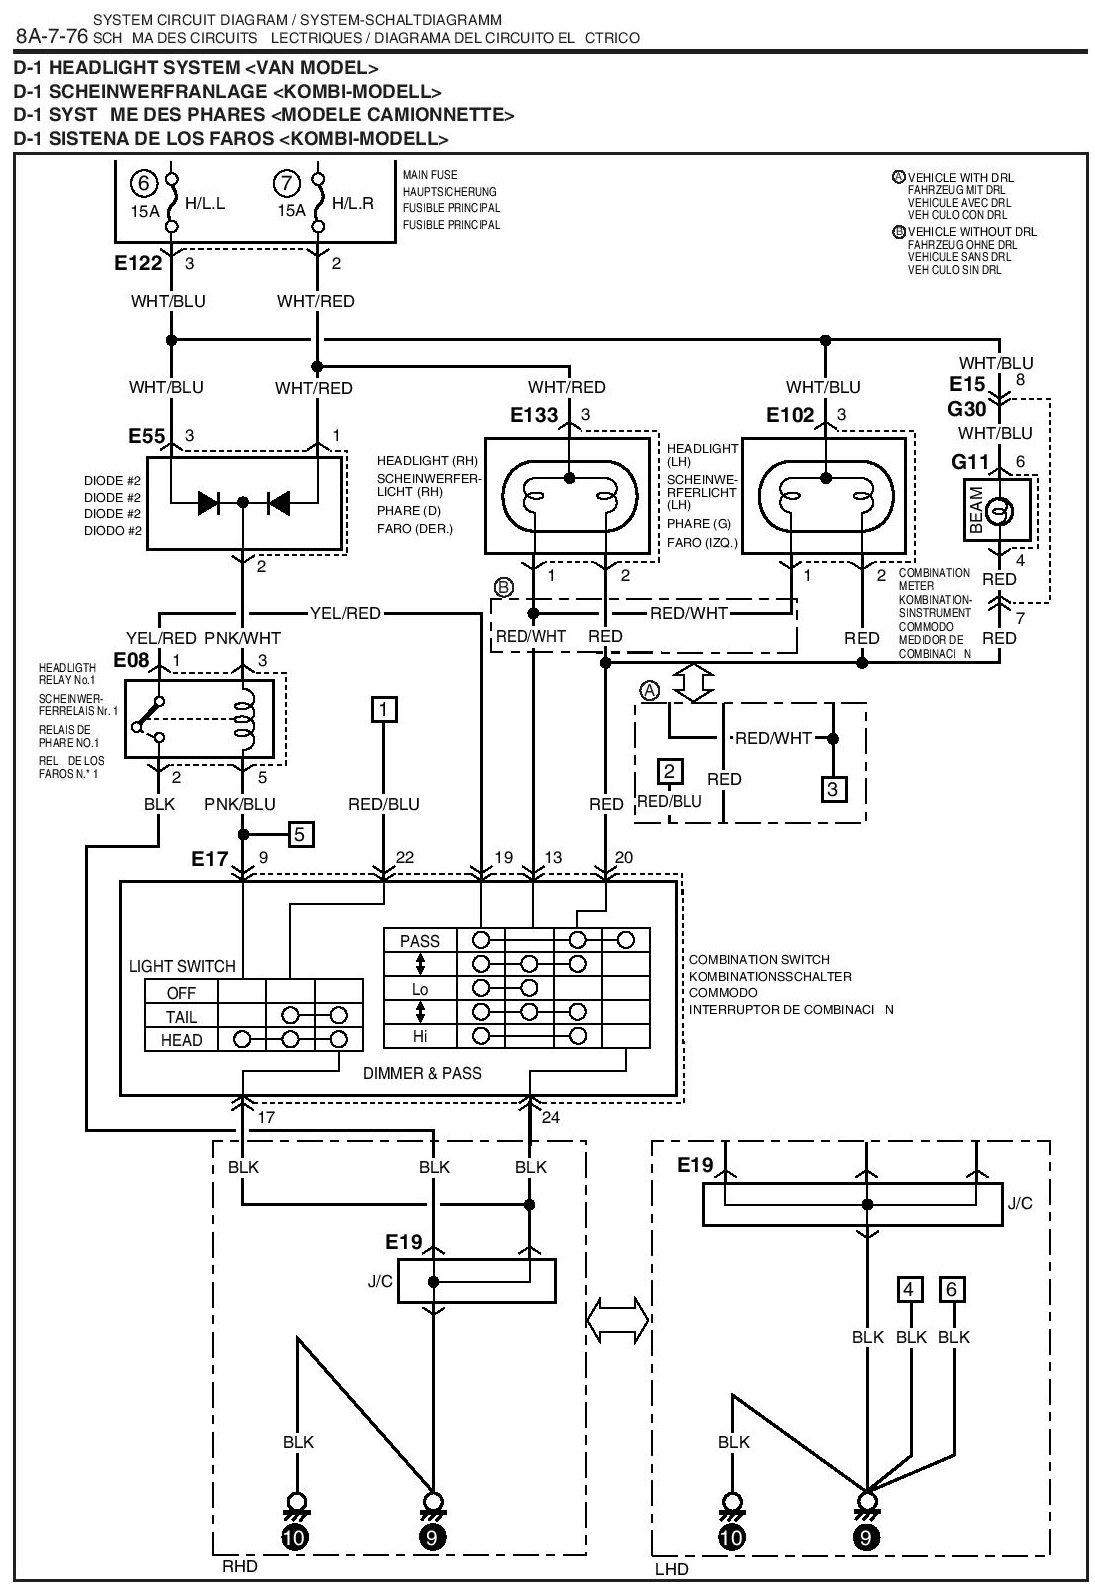 2001 suzuki xl 7 fuse box diagram